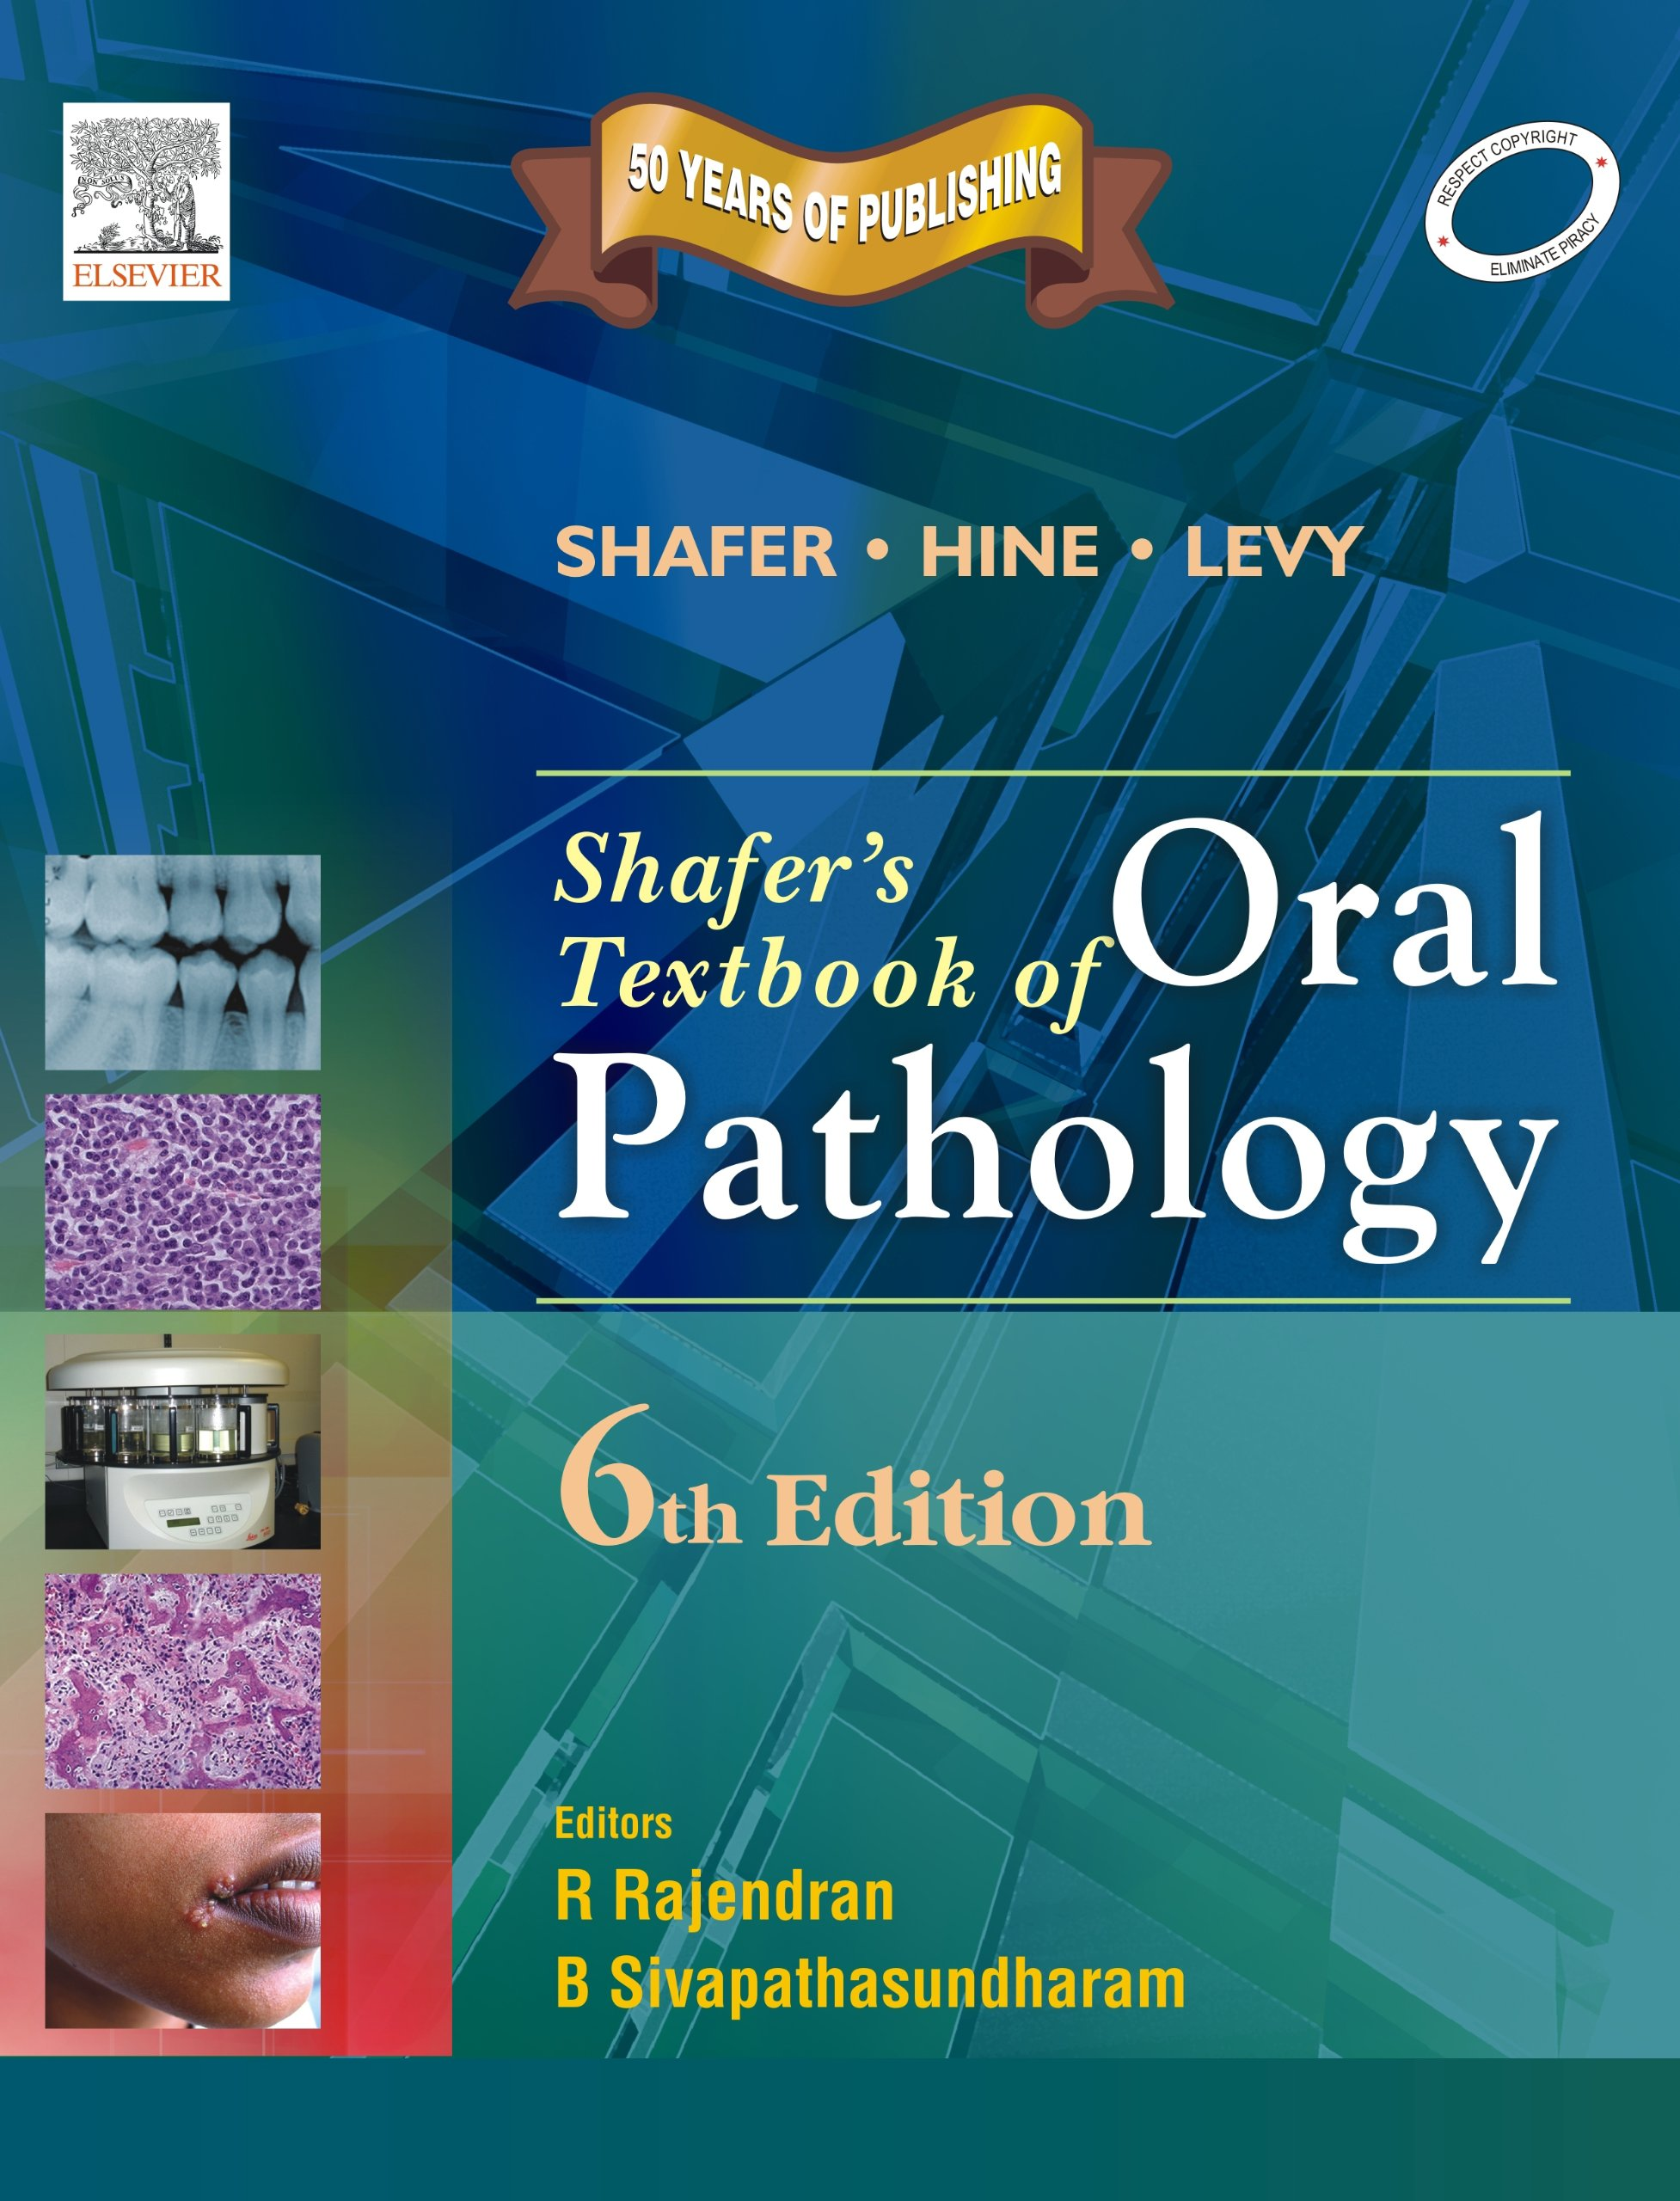 Download shafer's textbook of oral pathology 7th edition pdf.